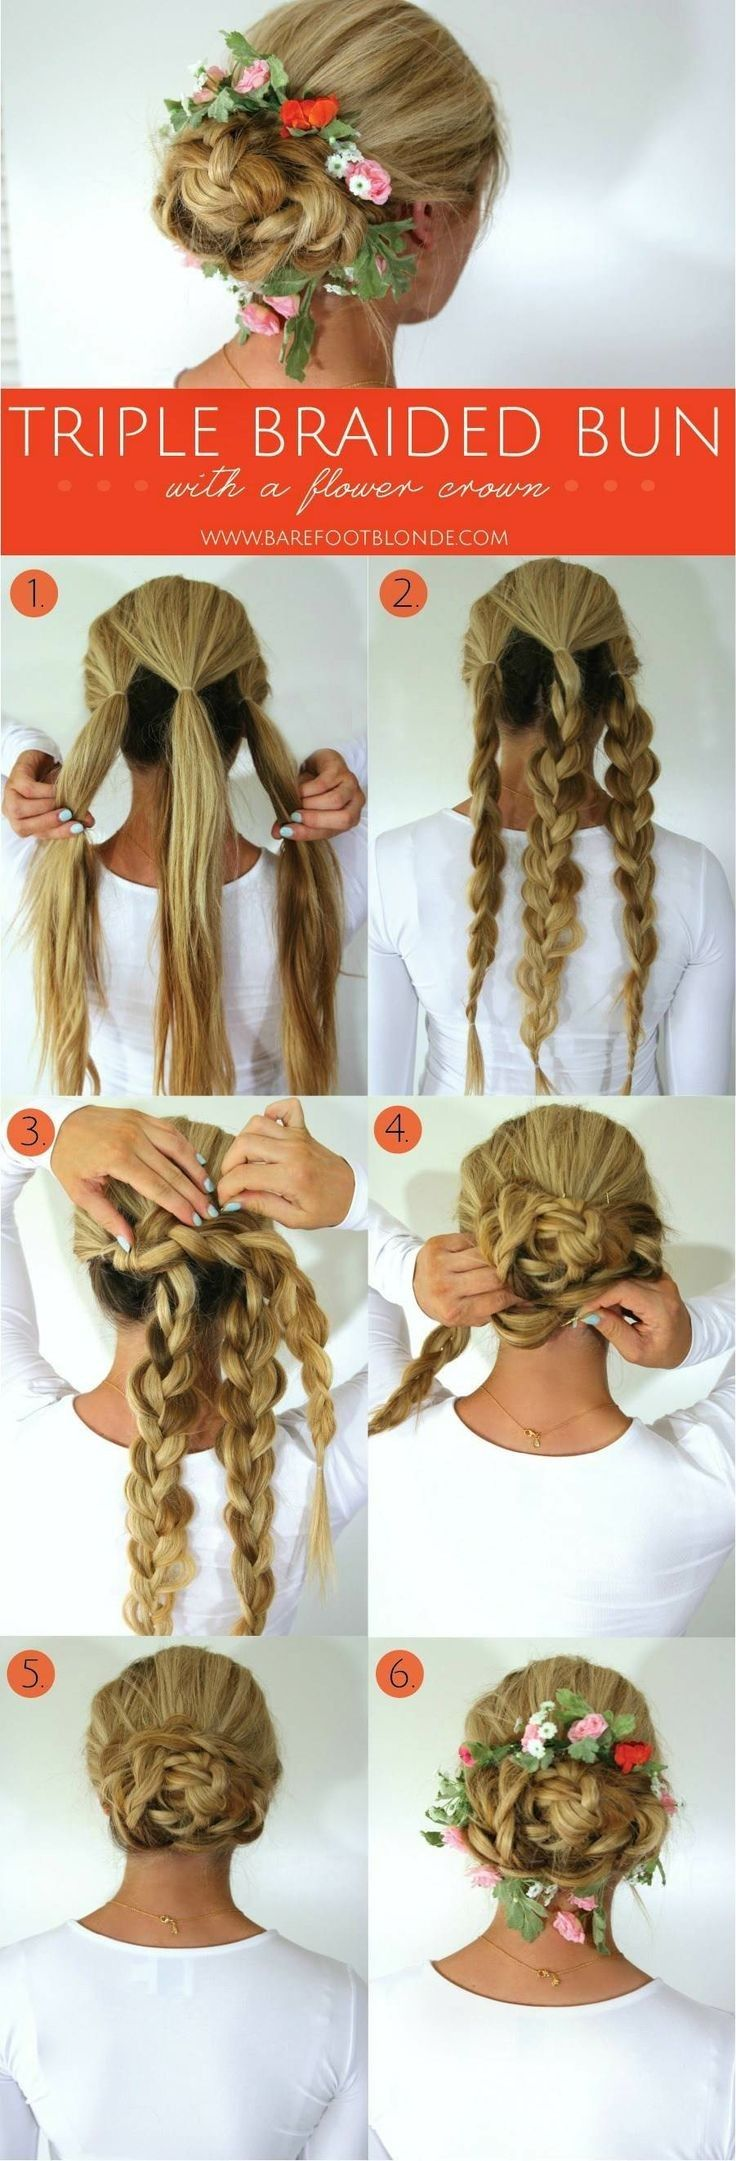 86 best Wedding guest hairstyles images on Pinterest | Half up ...